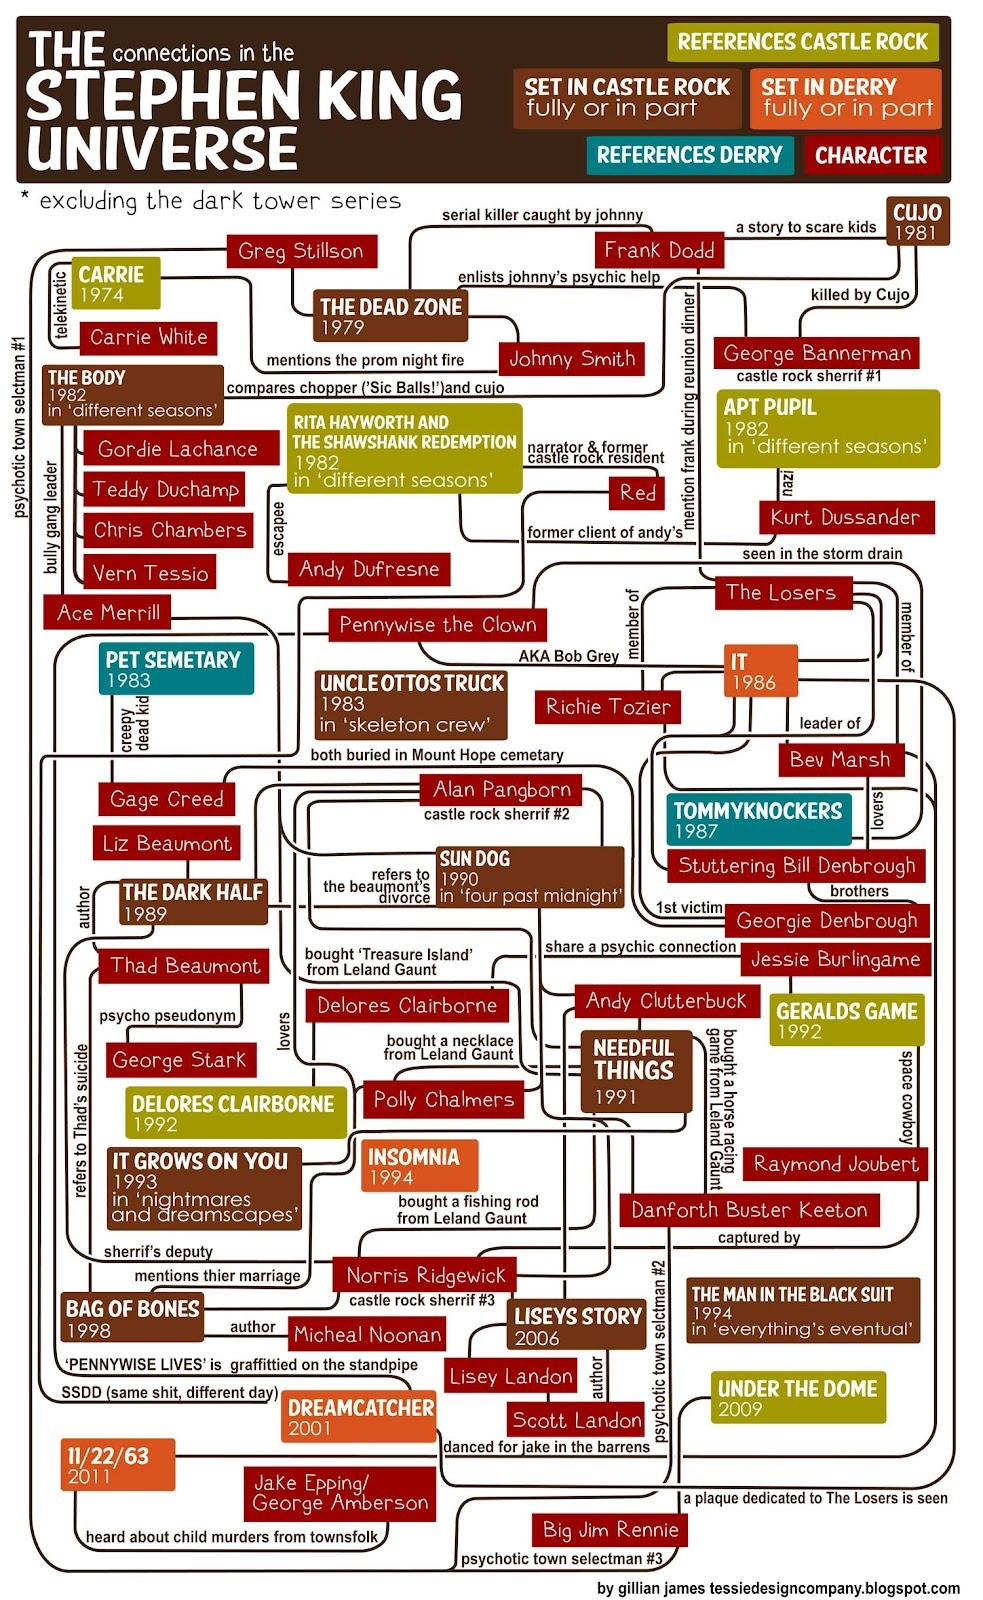 scribnerbooks:  A flowchart of Stephen King's universe.  This is pretty much a flow chart of my reading habits from 4th grade to freshman year of college. ^KE